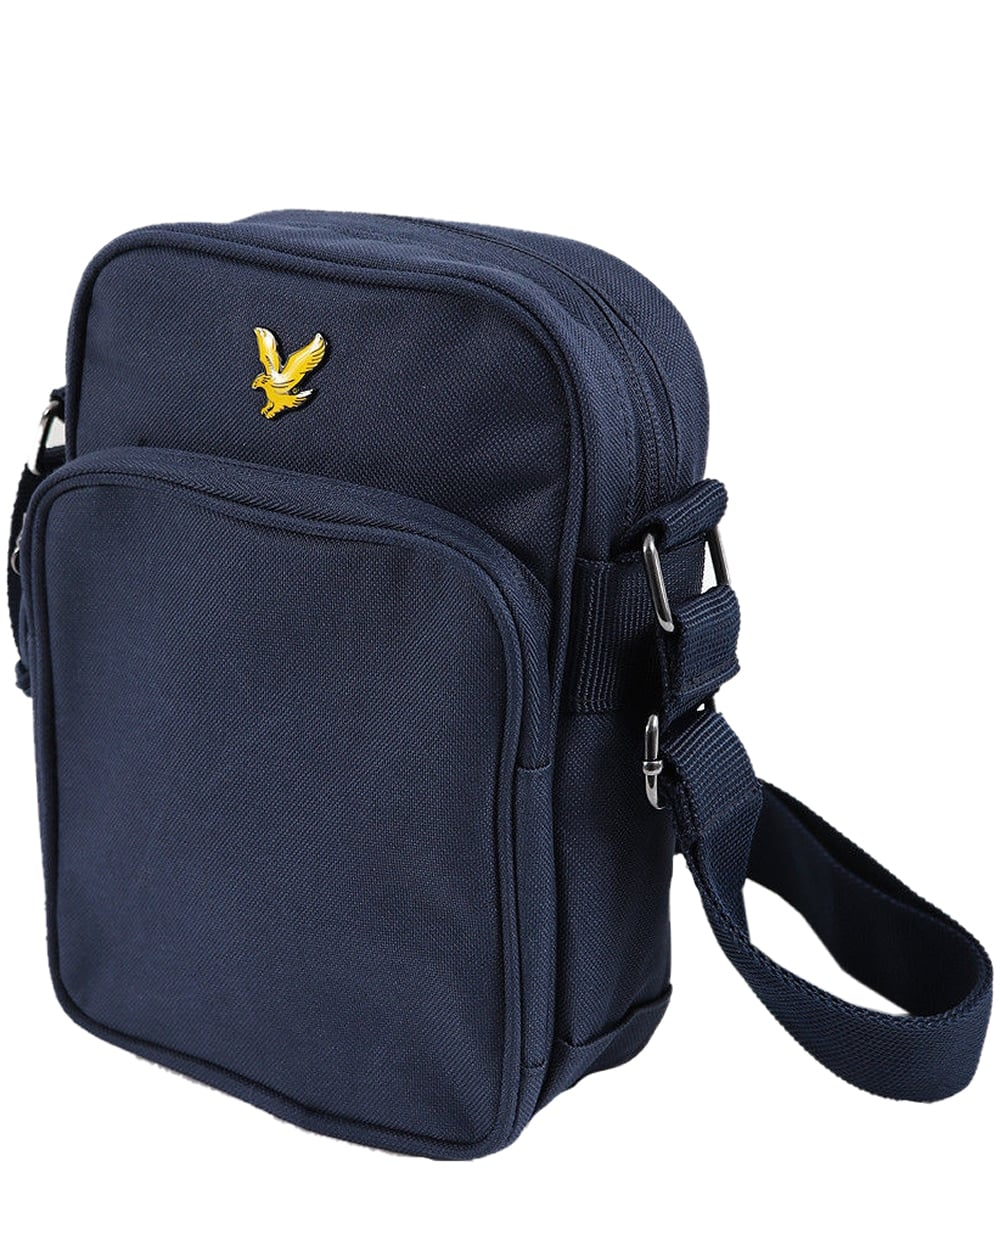 Lyle And Scott Colour Pop Small Items Bag Navy,flight,travel,shoulder 3b5800ab44